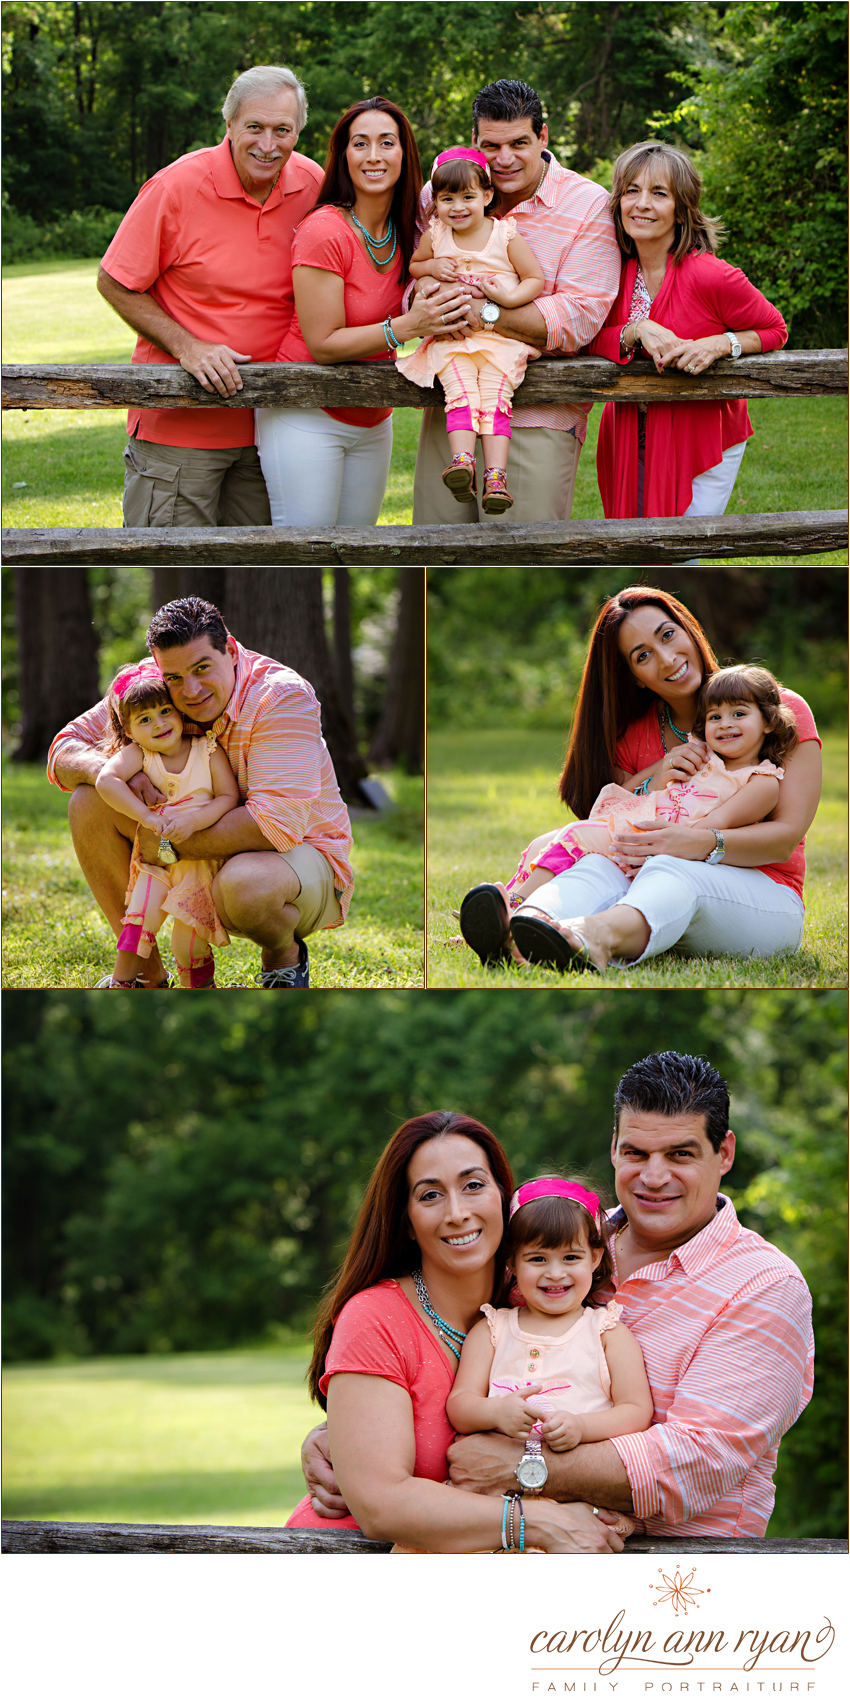 Charlotte, NC Family Photographer, Carolyn Ann Ryan, highlights a portrait session with special family moments